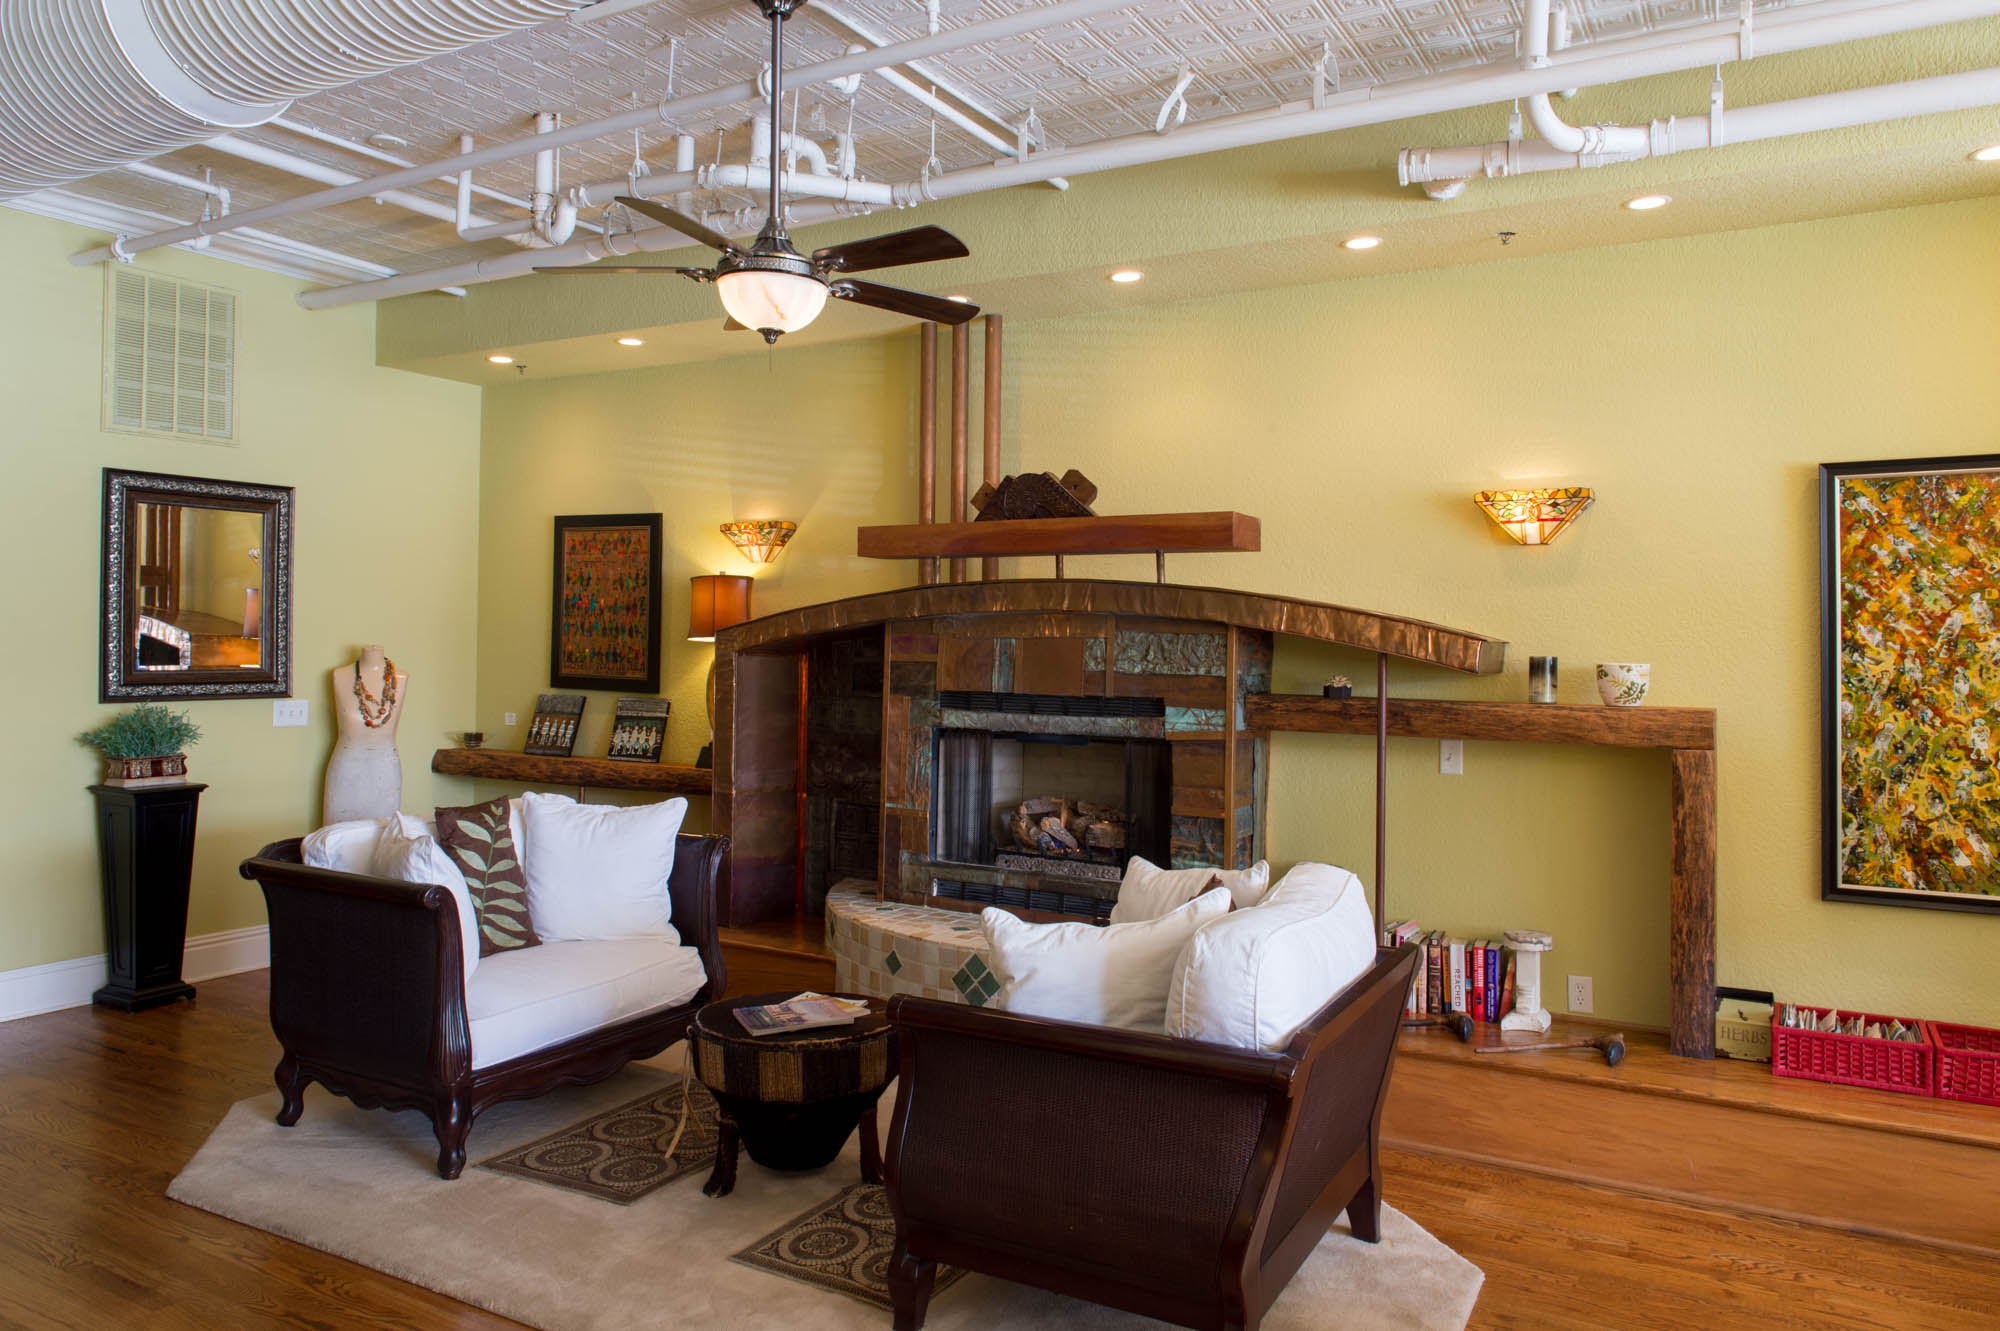 Den with Fireplace - Open to Dining Room, Kitchen and Living Room